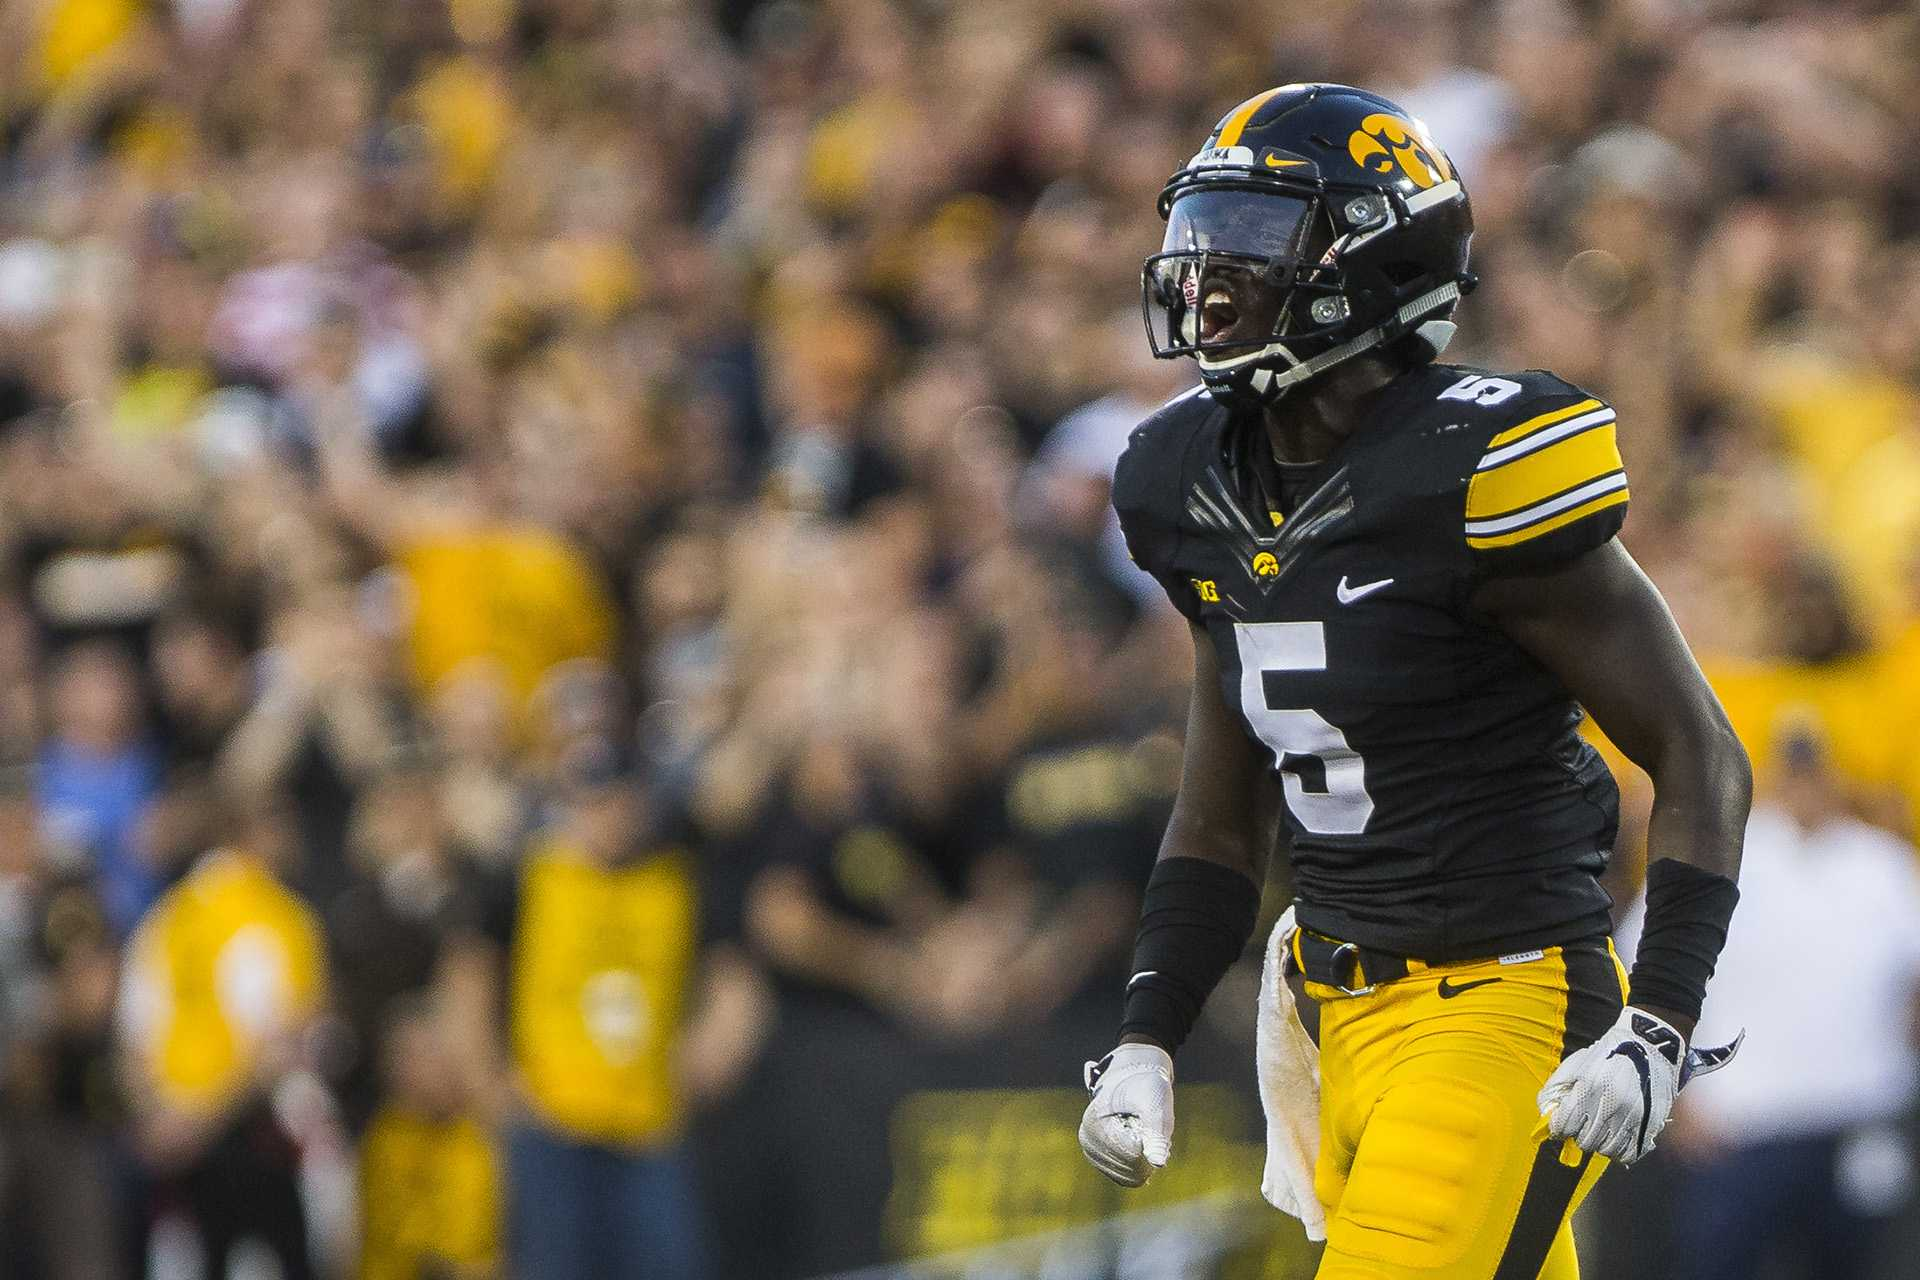 Manny Rugamba runs toward the sideline during the game between Iowa and Penn State at Kinnick Stadium on Saturday, Sept. 23, 2017. Both teams are going into the game undefeated with records of 3-0. (Ben Smith/The Daily Iowan)